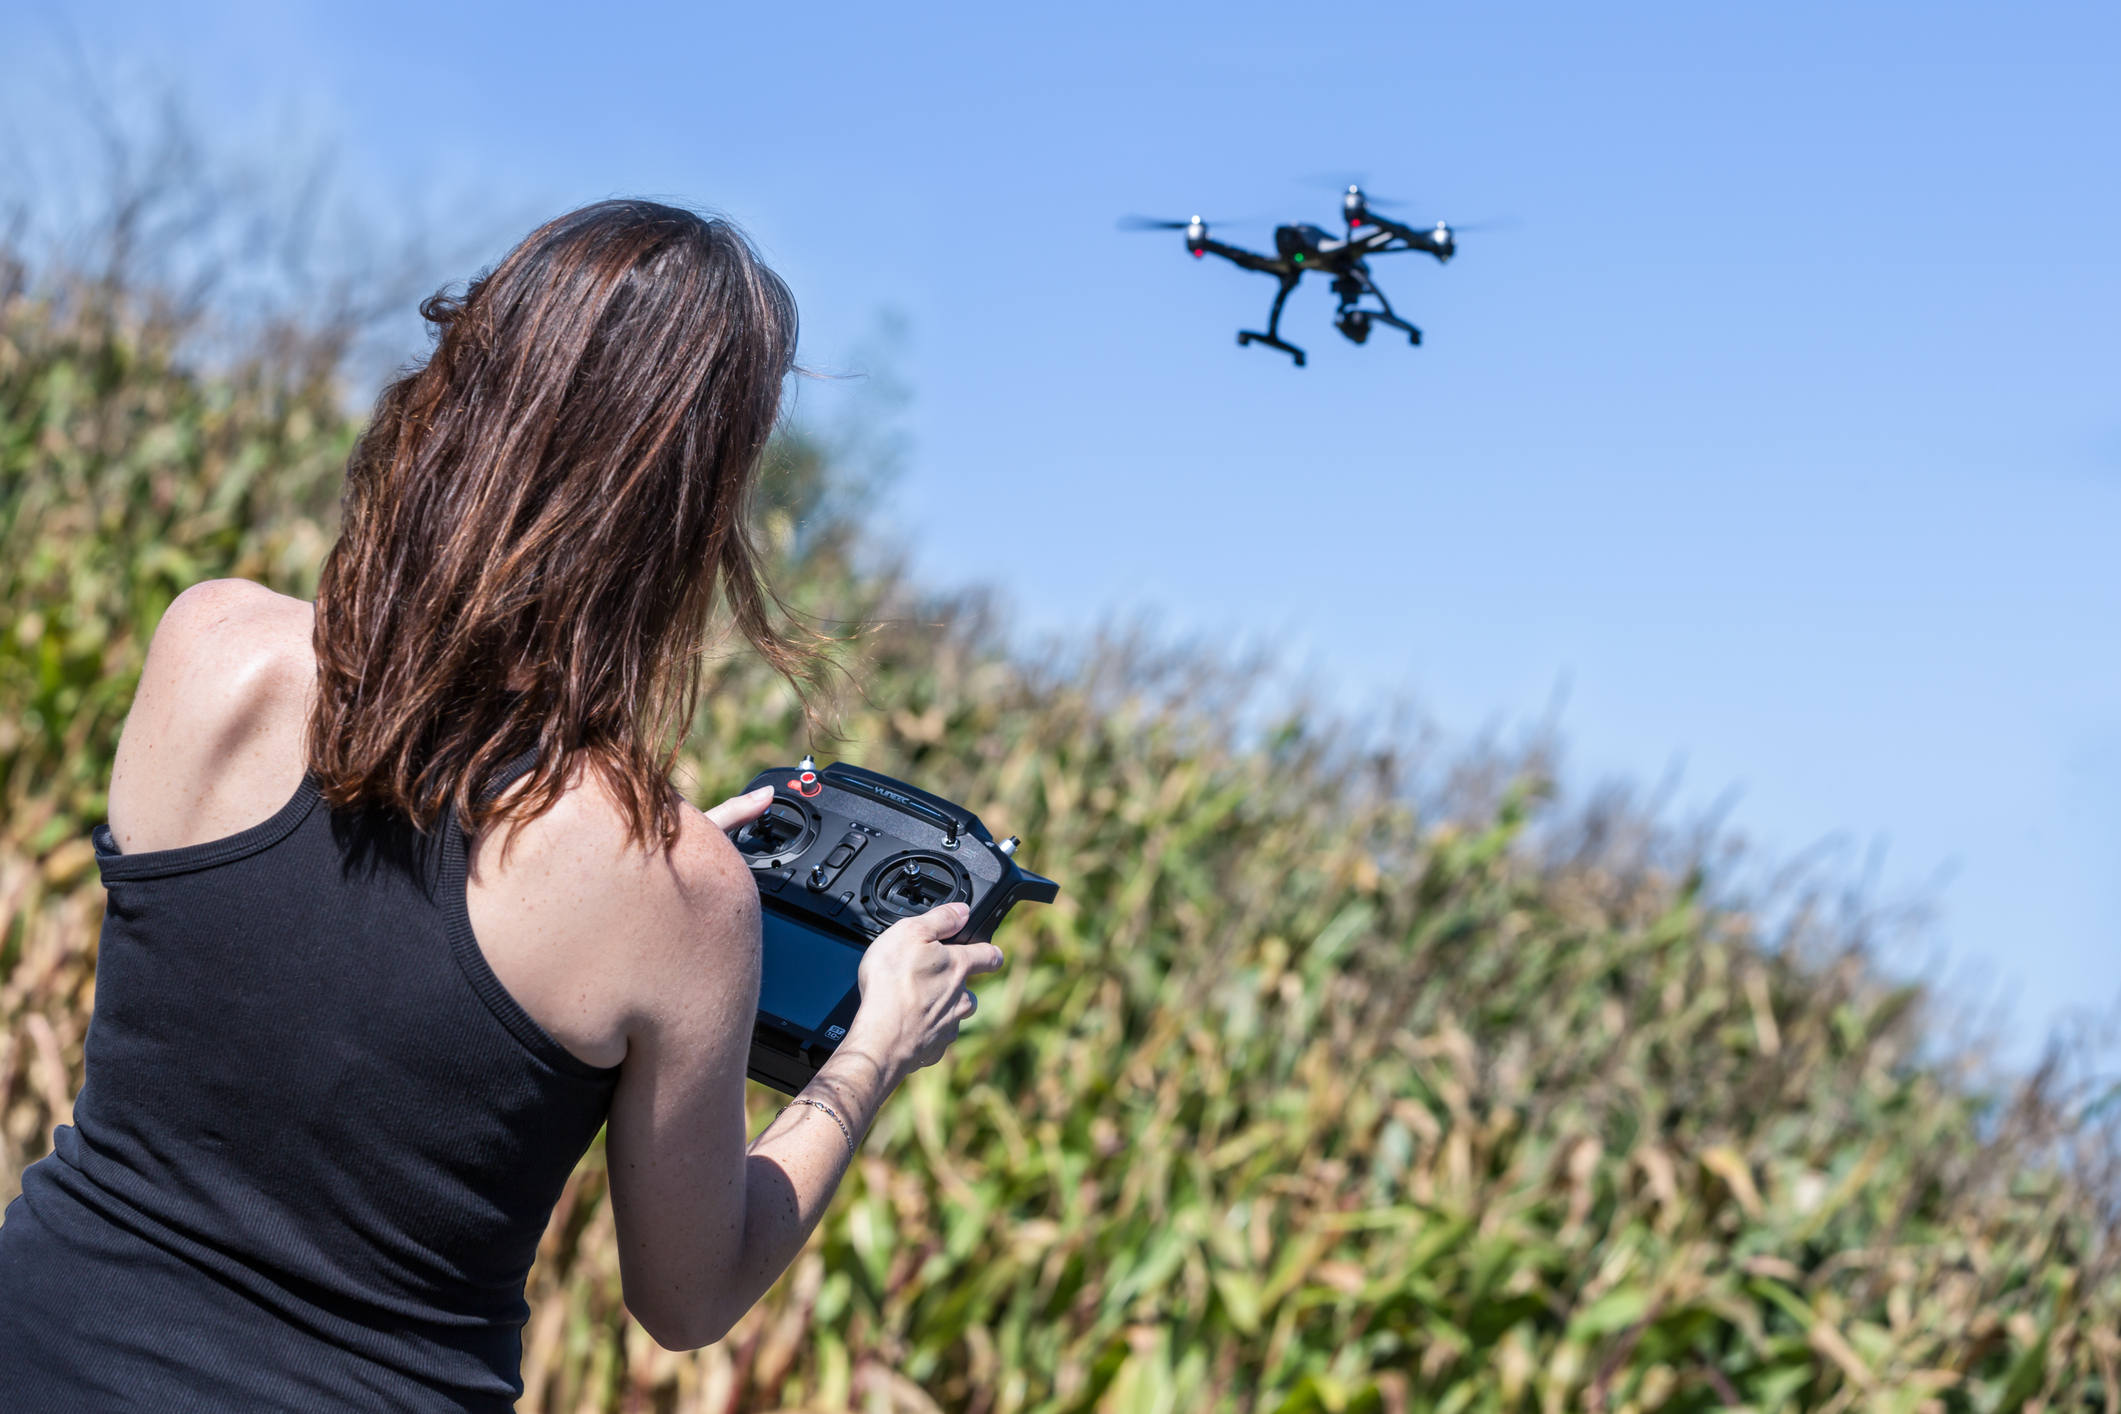 Nominate the top leaders in the drone industry for the Women and Drones second annual award